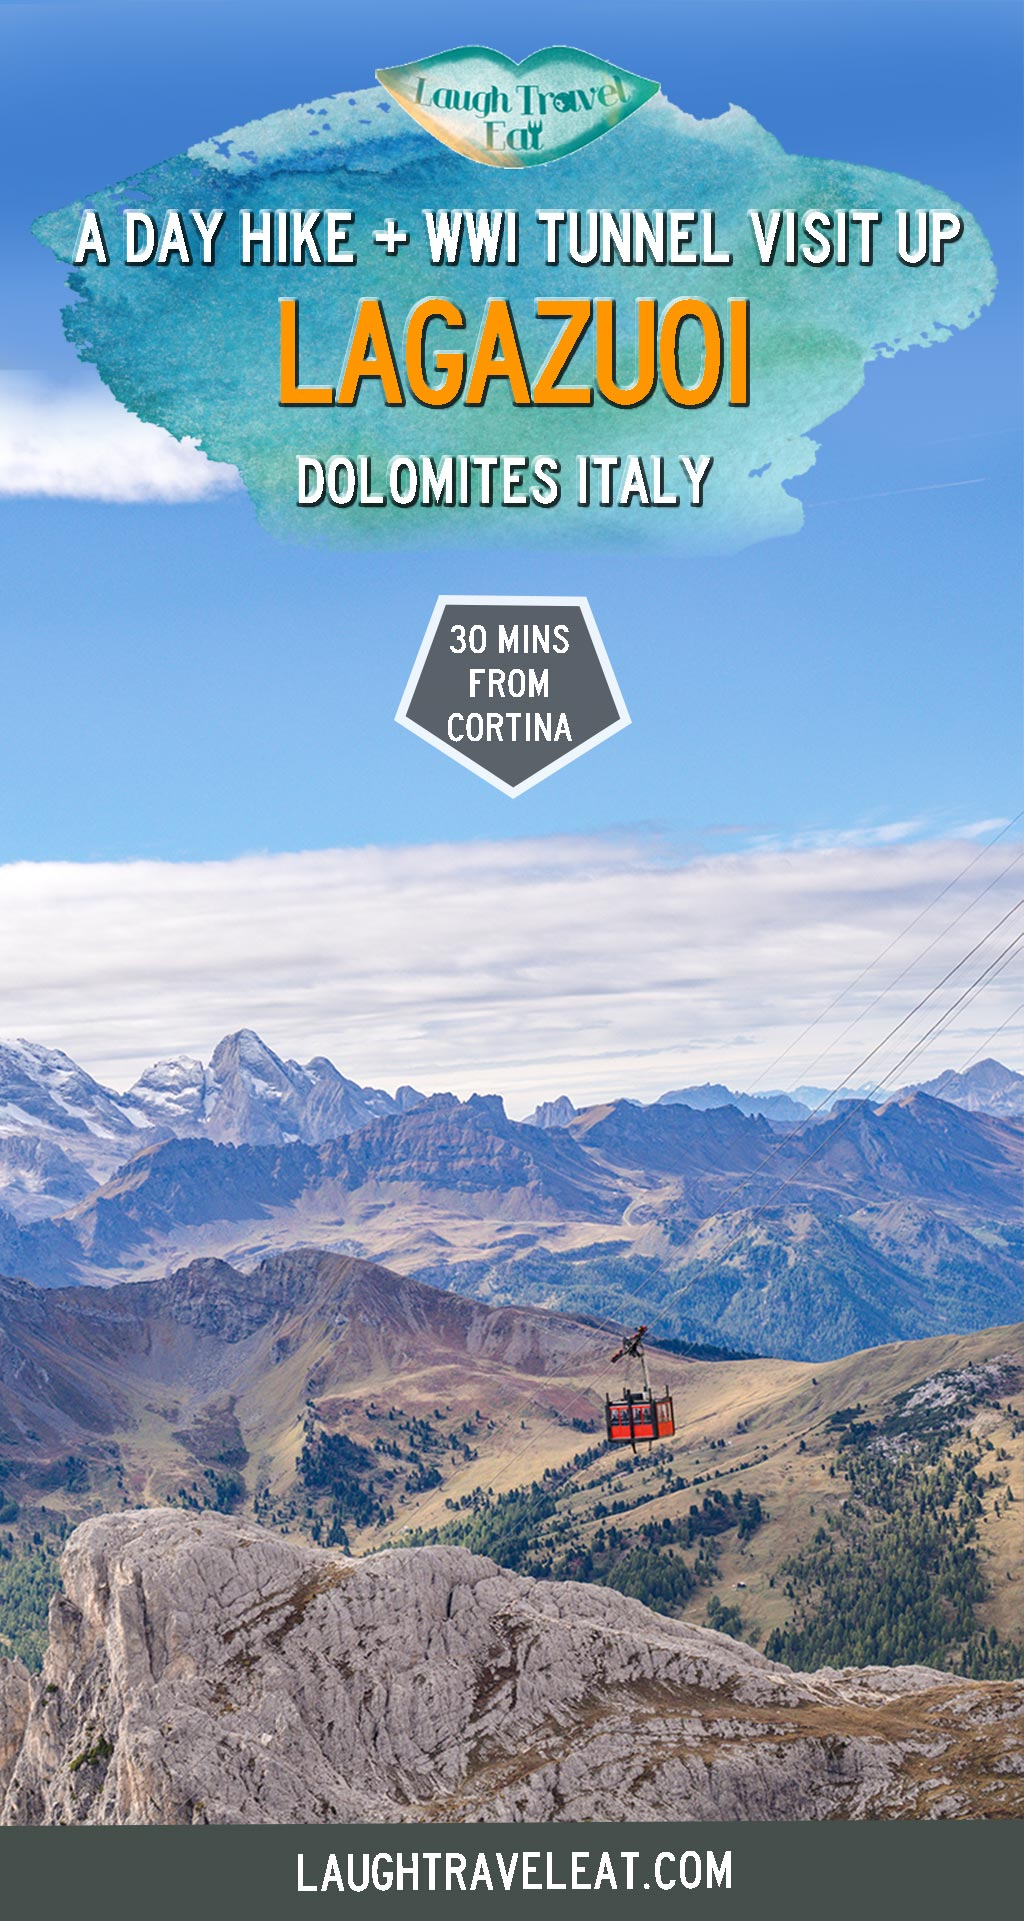 The Lagazuoi is one of the best day hikes from Cortina d'Ampezzo in the Italian Dolomites. While the view is undeniably spectacular, it is more famous for its historical significance during WWI. Here's how to do a day hike there: #dolomite #italy #lagazuoi #hike